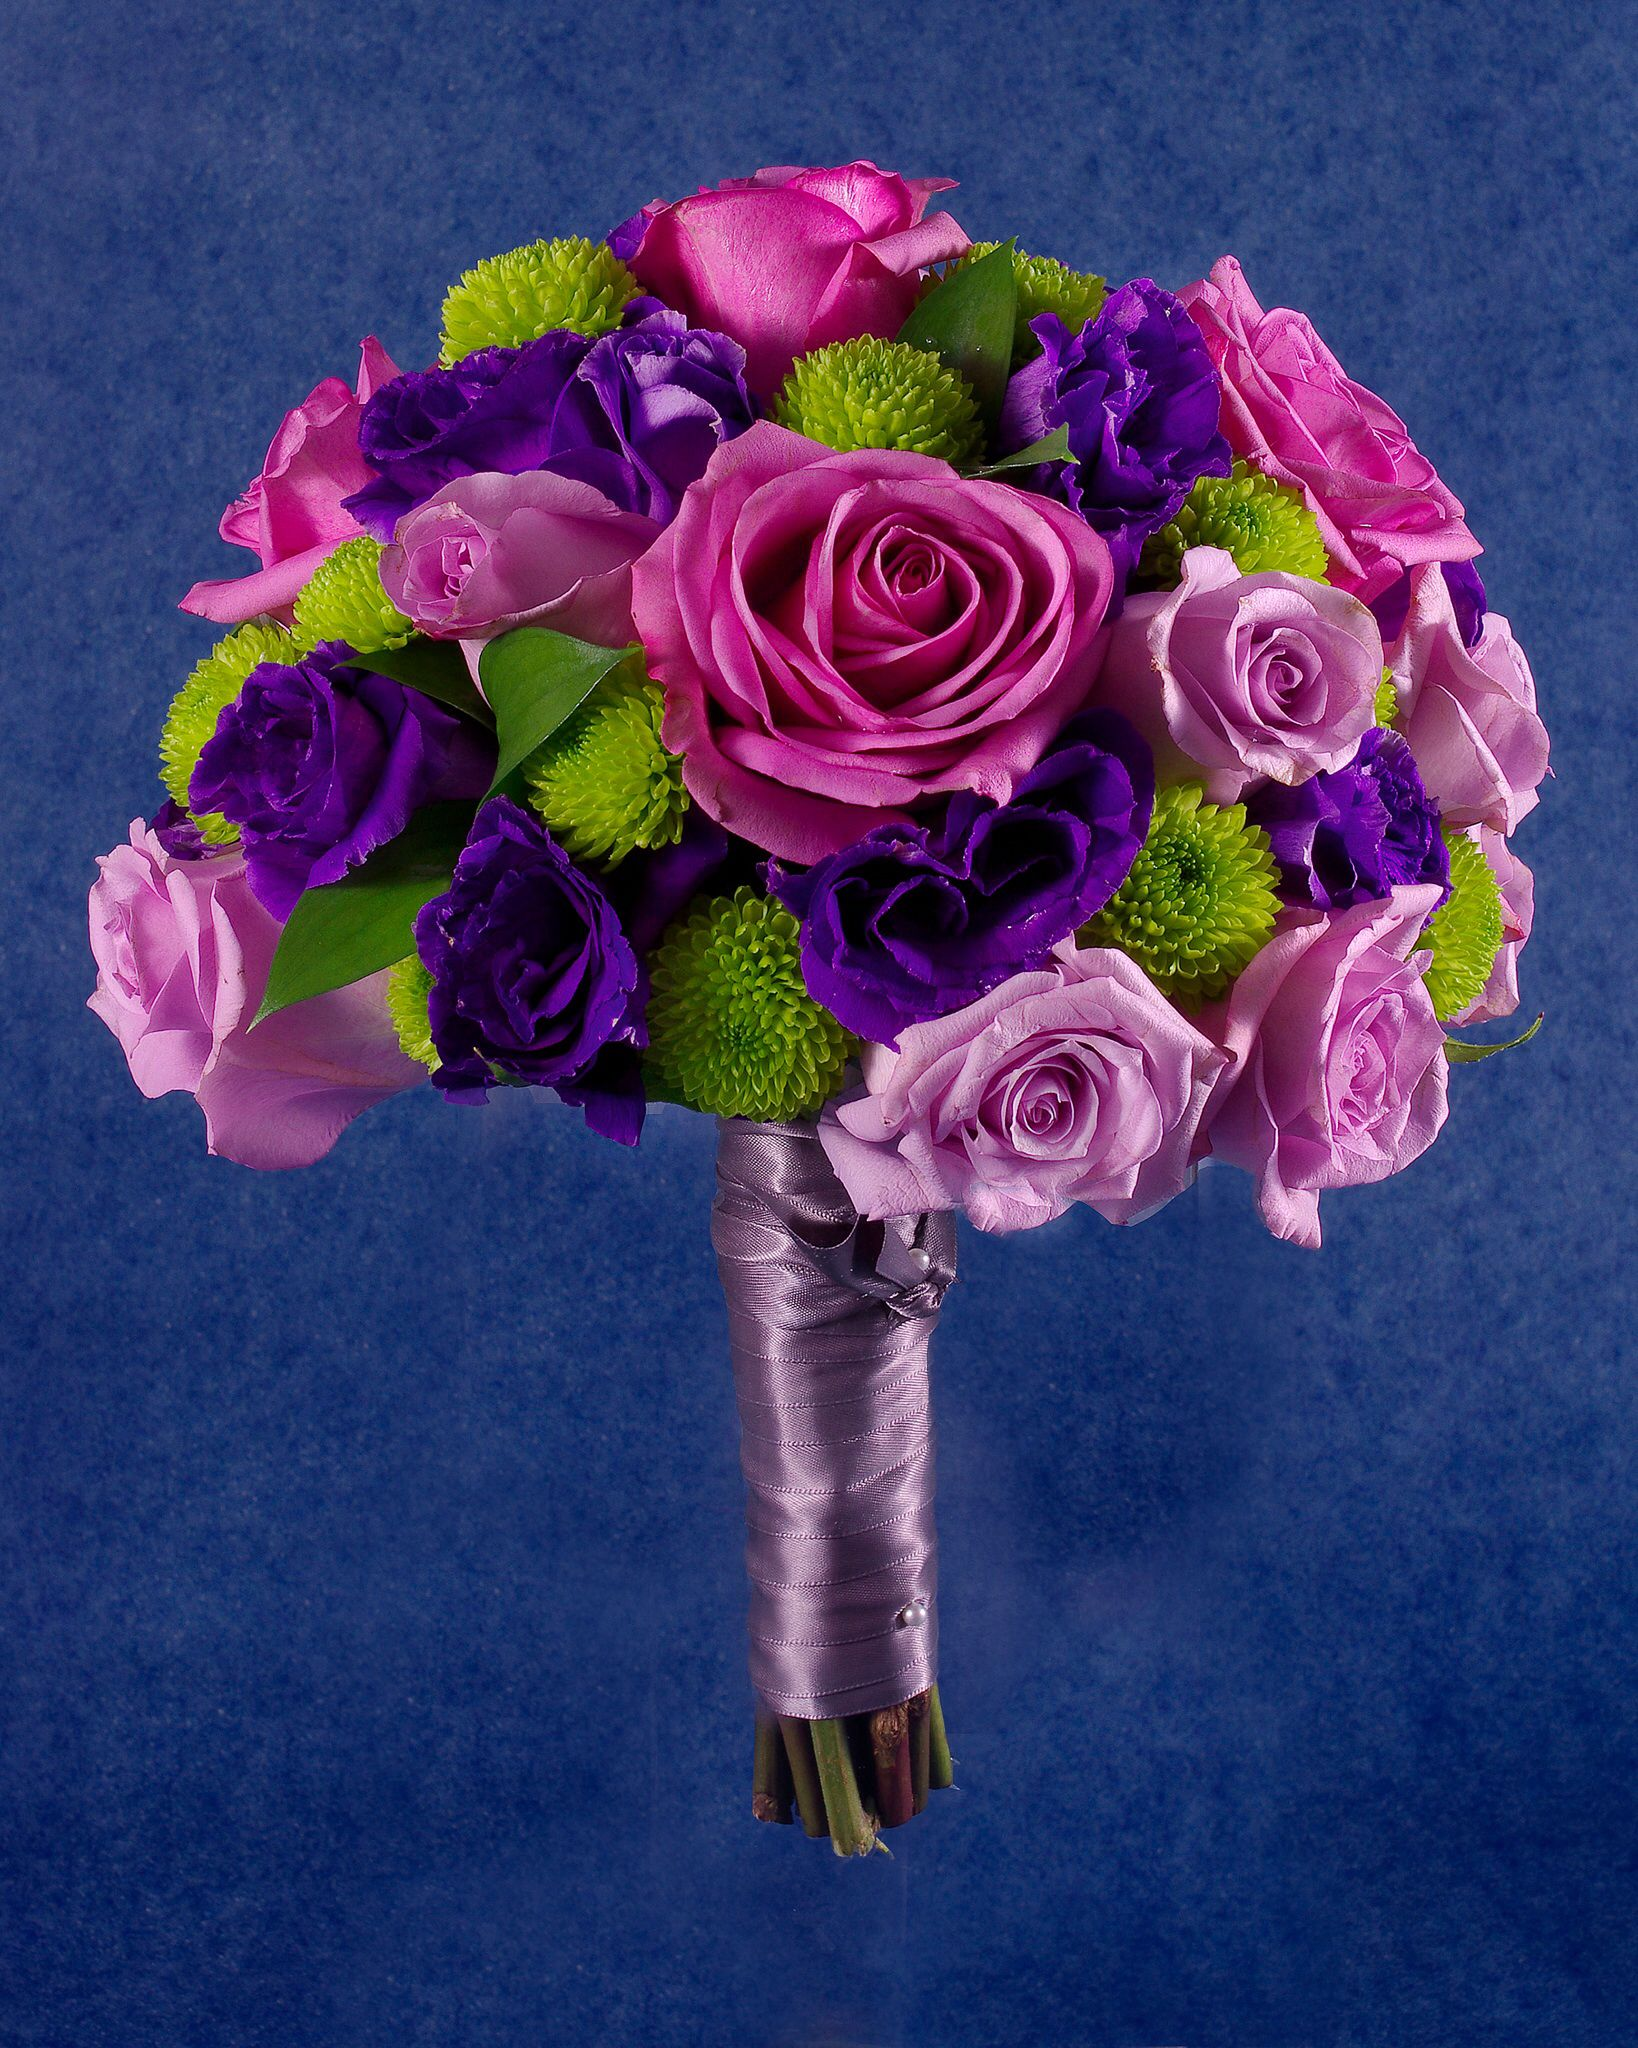 Roses And Lisianthus Bridesmaid Bouquets Purple Lavender Violet Lime Gre Purple Bridesmaid Bouquets Colorful Wedding Bouquet Lisianthus Bridesmaid Bouquet